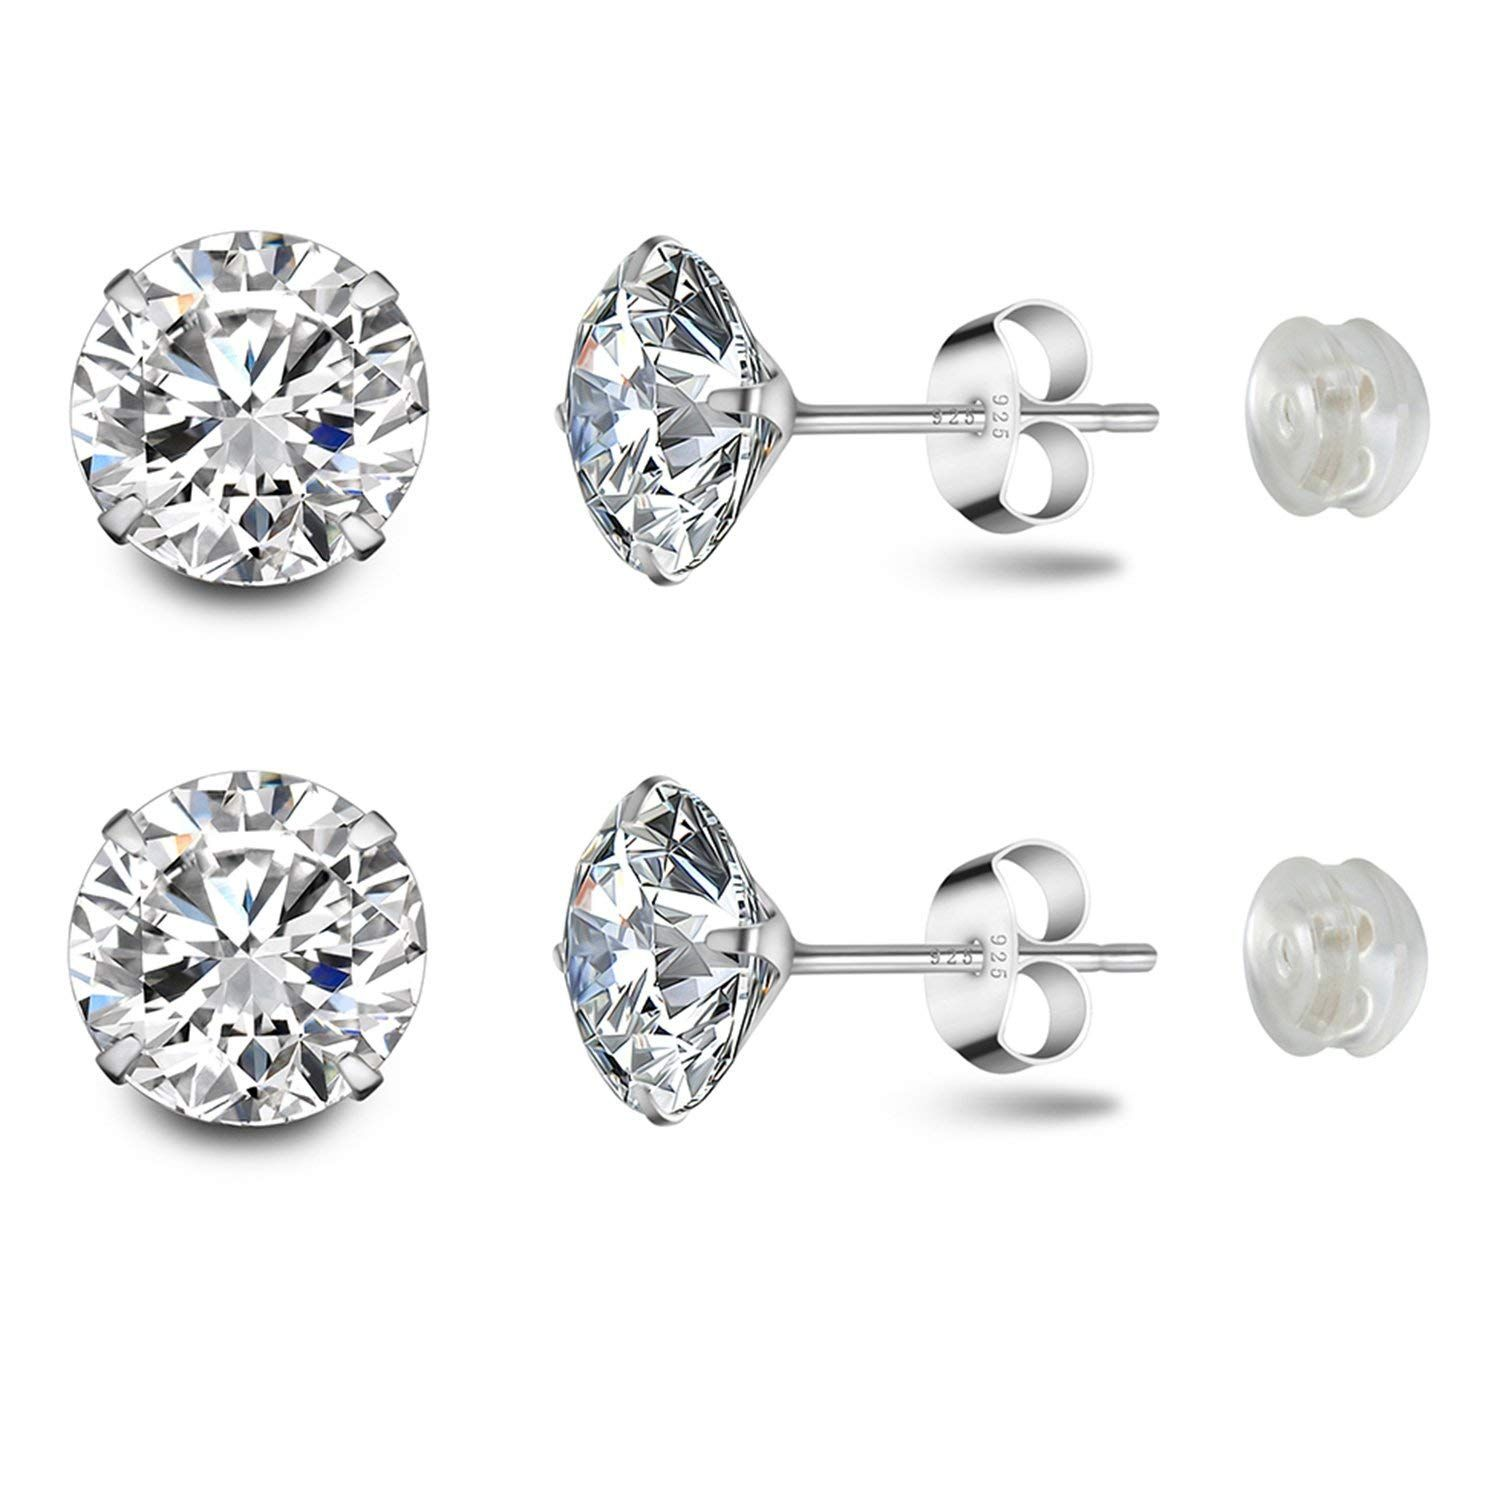 b2468570f Stud Earrings Platinum Plated Sterling Silver Round Cut Cubic Zirconia 8mm  2.5 Carat Fashion Jewelry for Women and Girls's Ear Lobe with Gift Box *  Thanks ...